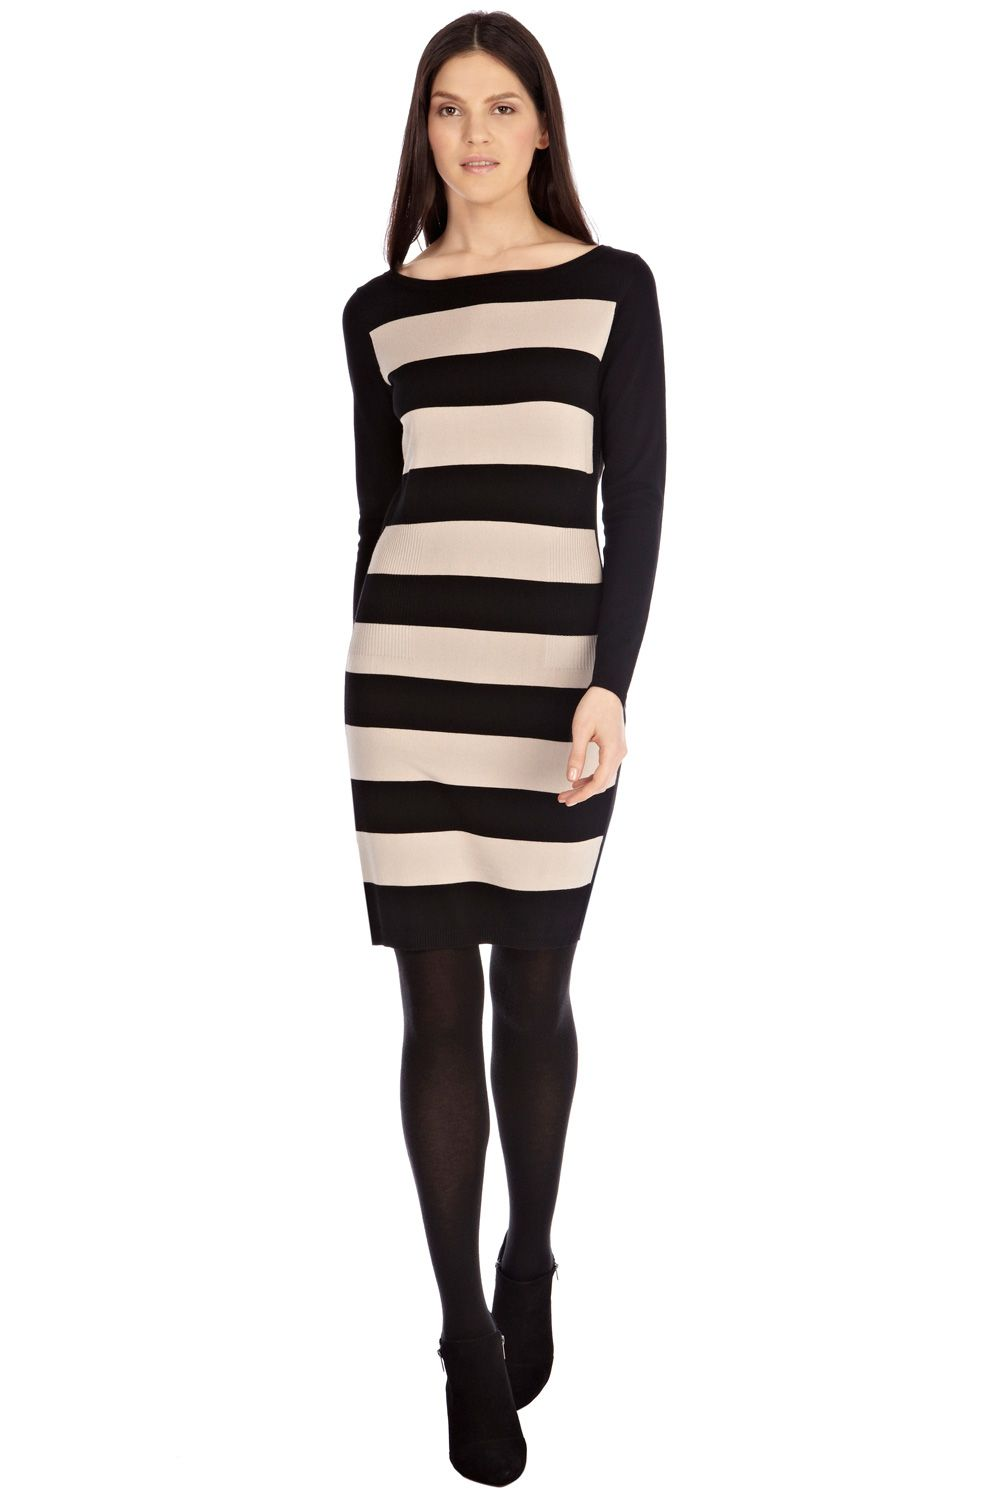 Tabbie knit dress